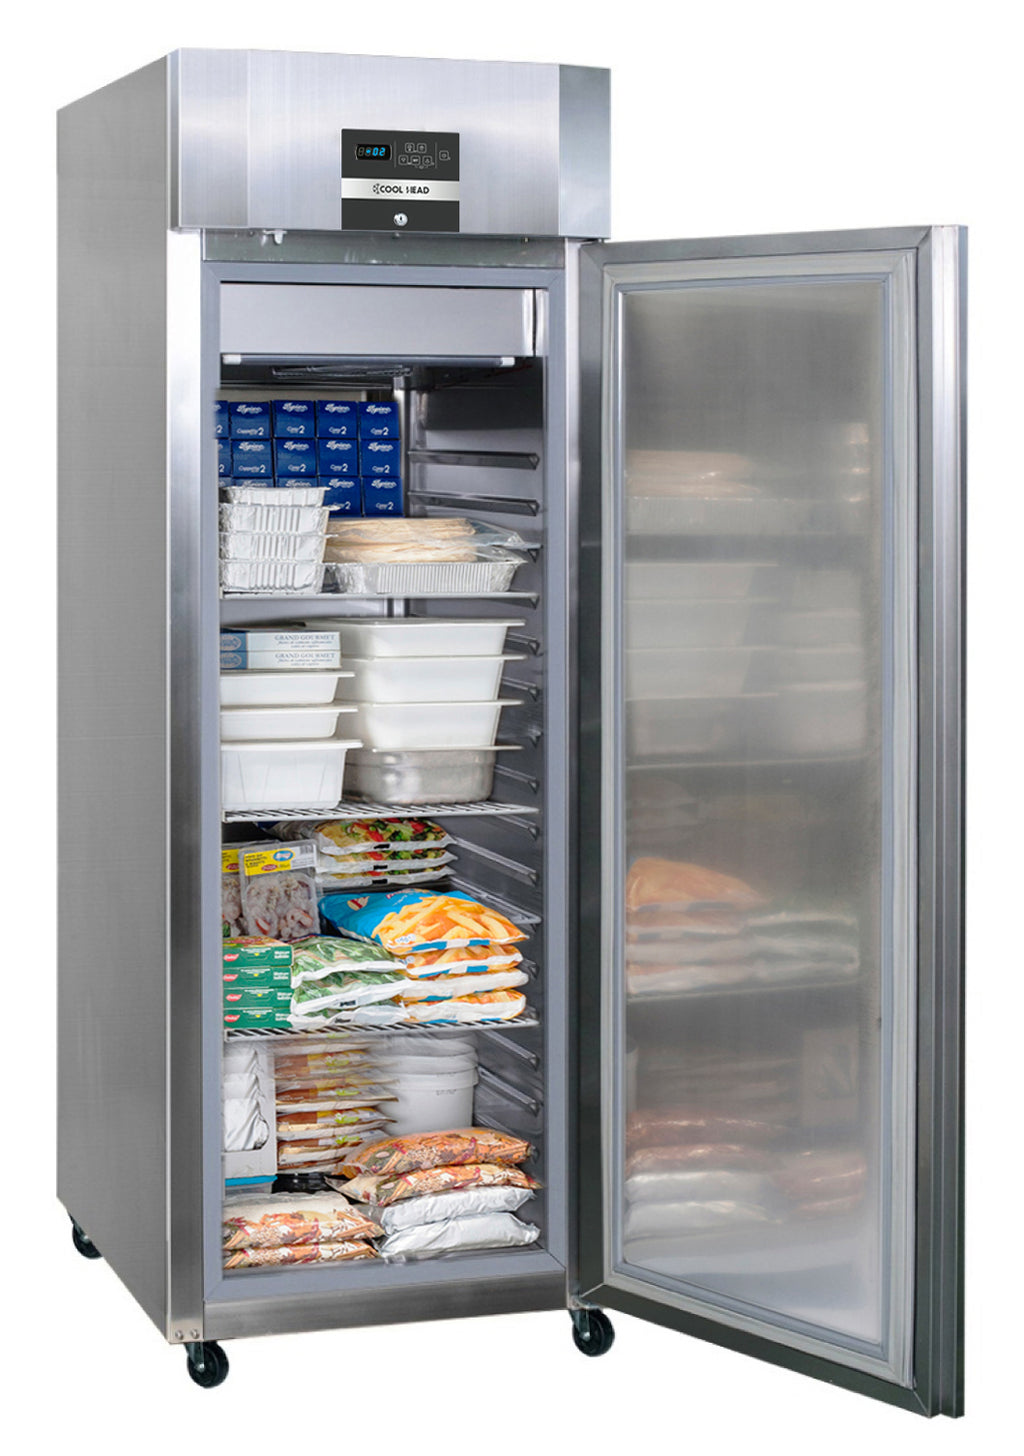 Blizzard Premium Ventilated Hydrocarbon Freezer  - 700 Litre Stainless Steel,Solid Door Freezer,Blizzard